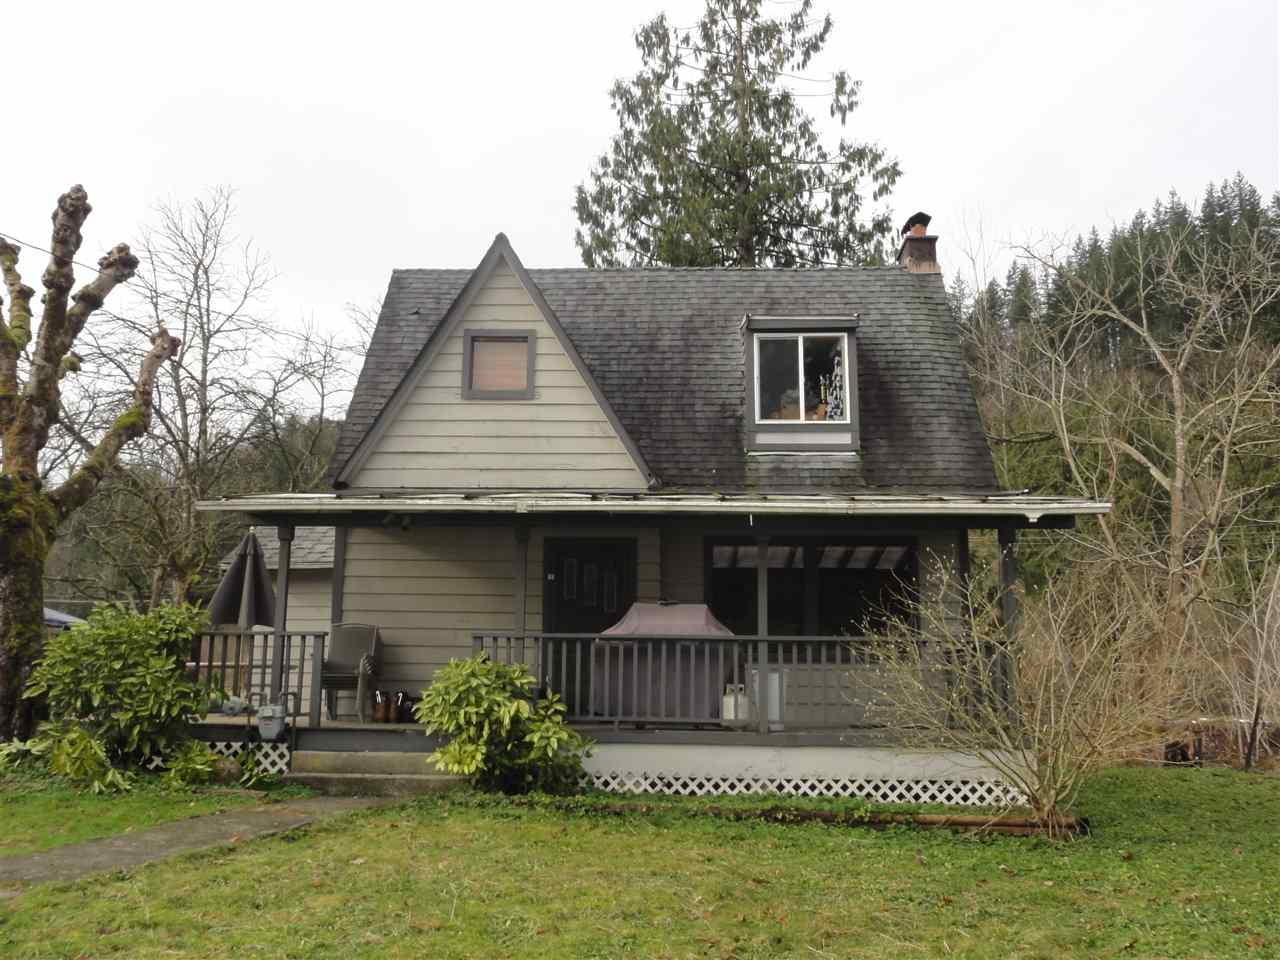 Investors take note 4.66 acres with a charming 1930's home with 1 bedroom on main, wood fireplace, loft offers a bedroom and sitting area, large deck off dining area and wraps around front entrance, 38x23 garage/shop both in need of TLC. Bonus 520 sq.ft. quaint 1 bedroom 1 bath self contained cabin (not in measurements) in good shape with fenced area. Lots of room to drive through for truckers. Few other out building for dogs/chickens?, water rights from Ball Brook, bring your ideas great property for the handyman or investor to rent out. Call for your realtor today appointments are a must dog on property.